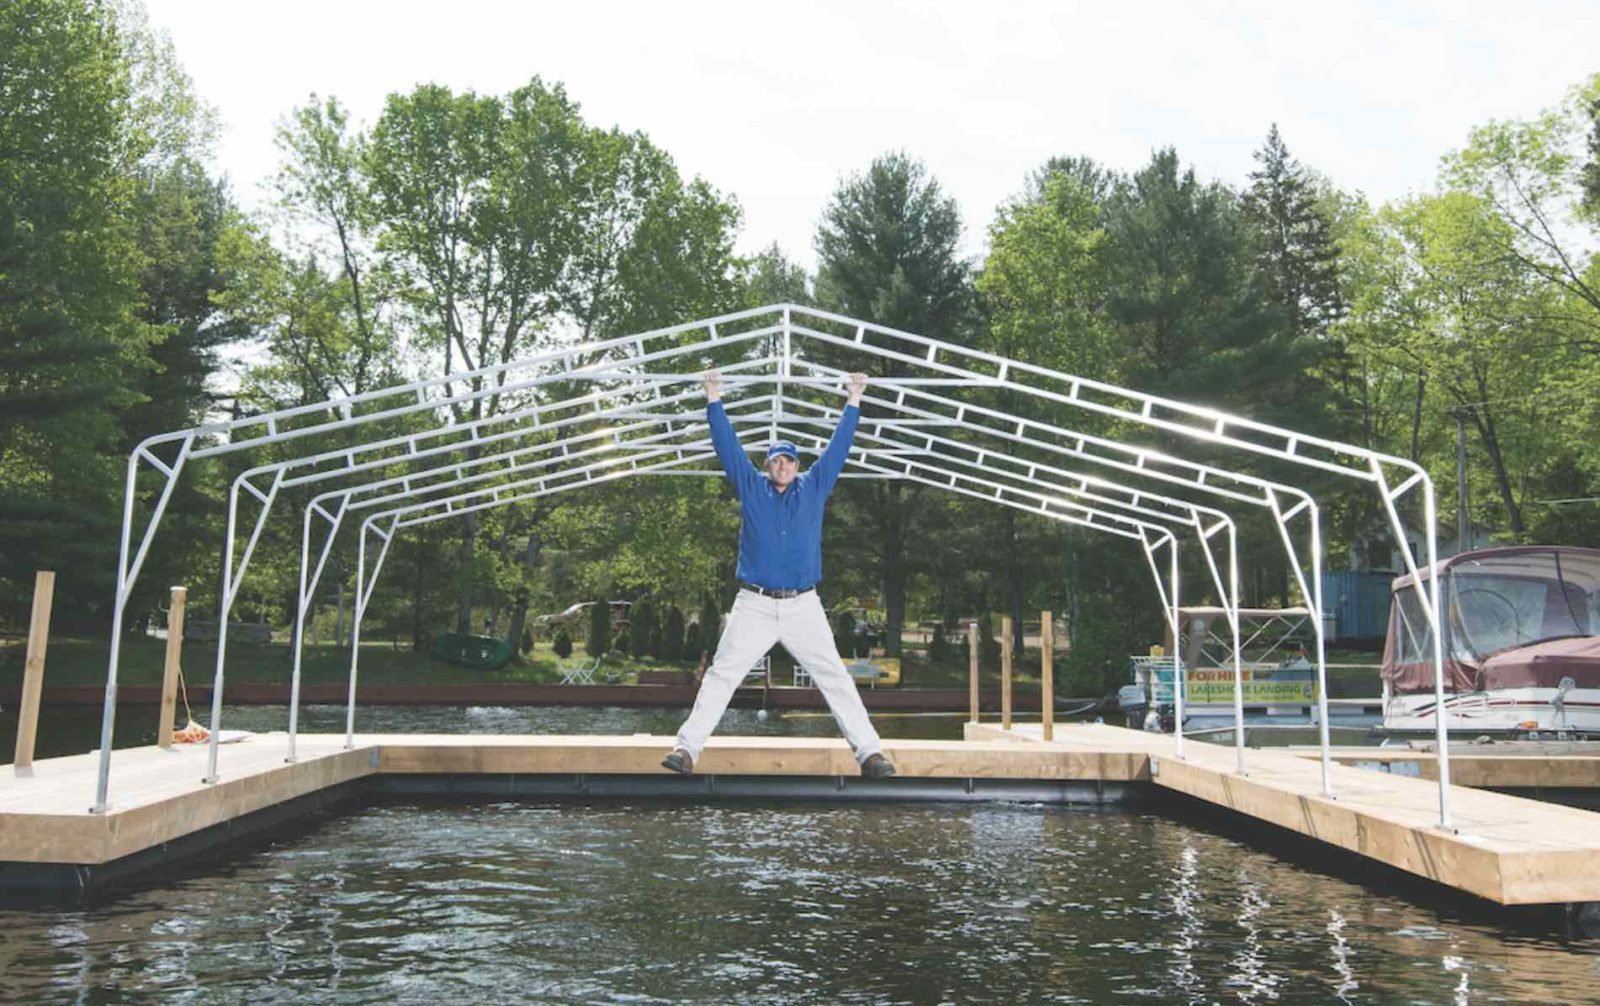 Aquadome made-in-Muskoka awnings with man hanging over water